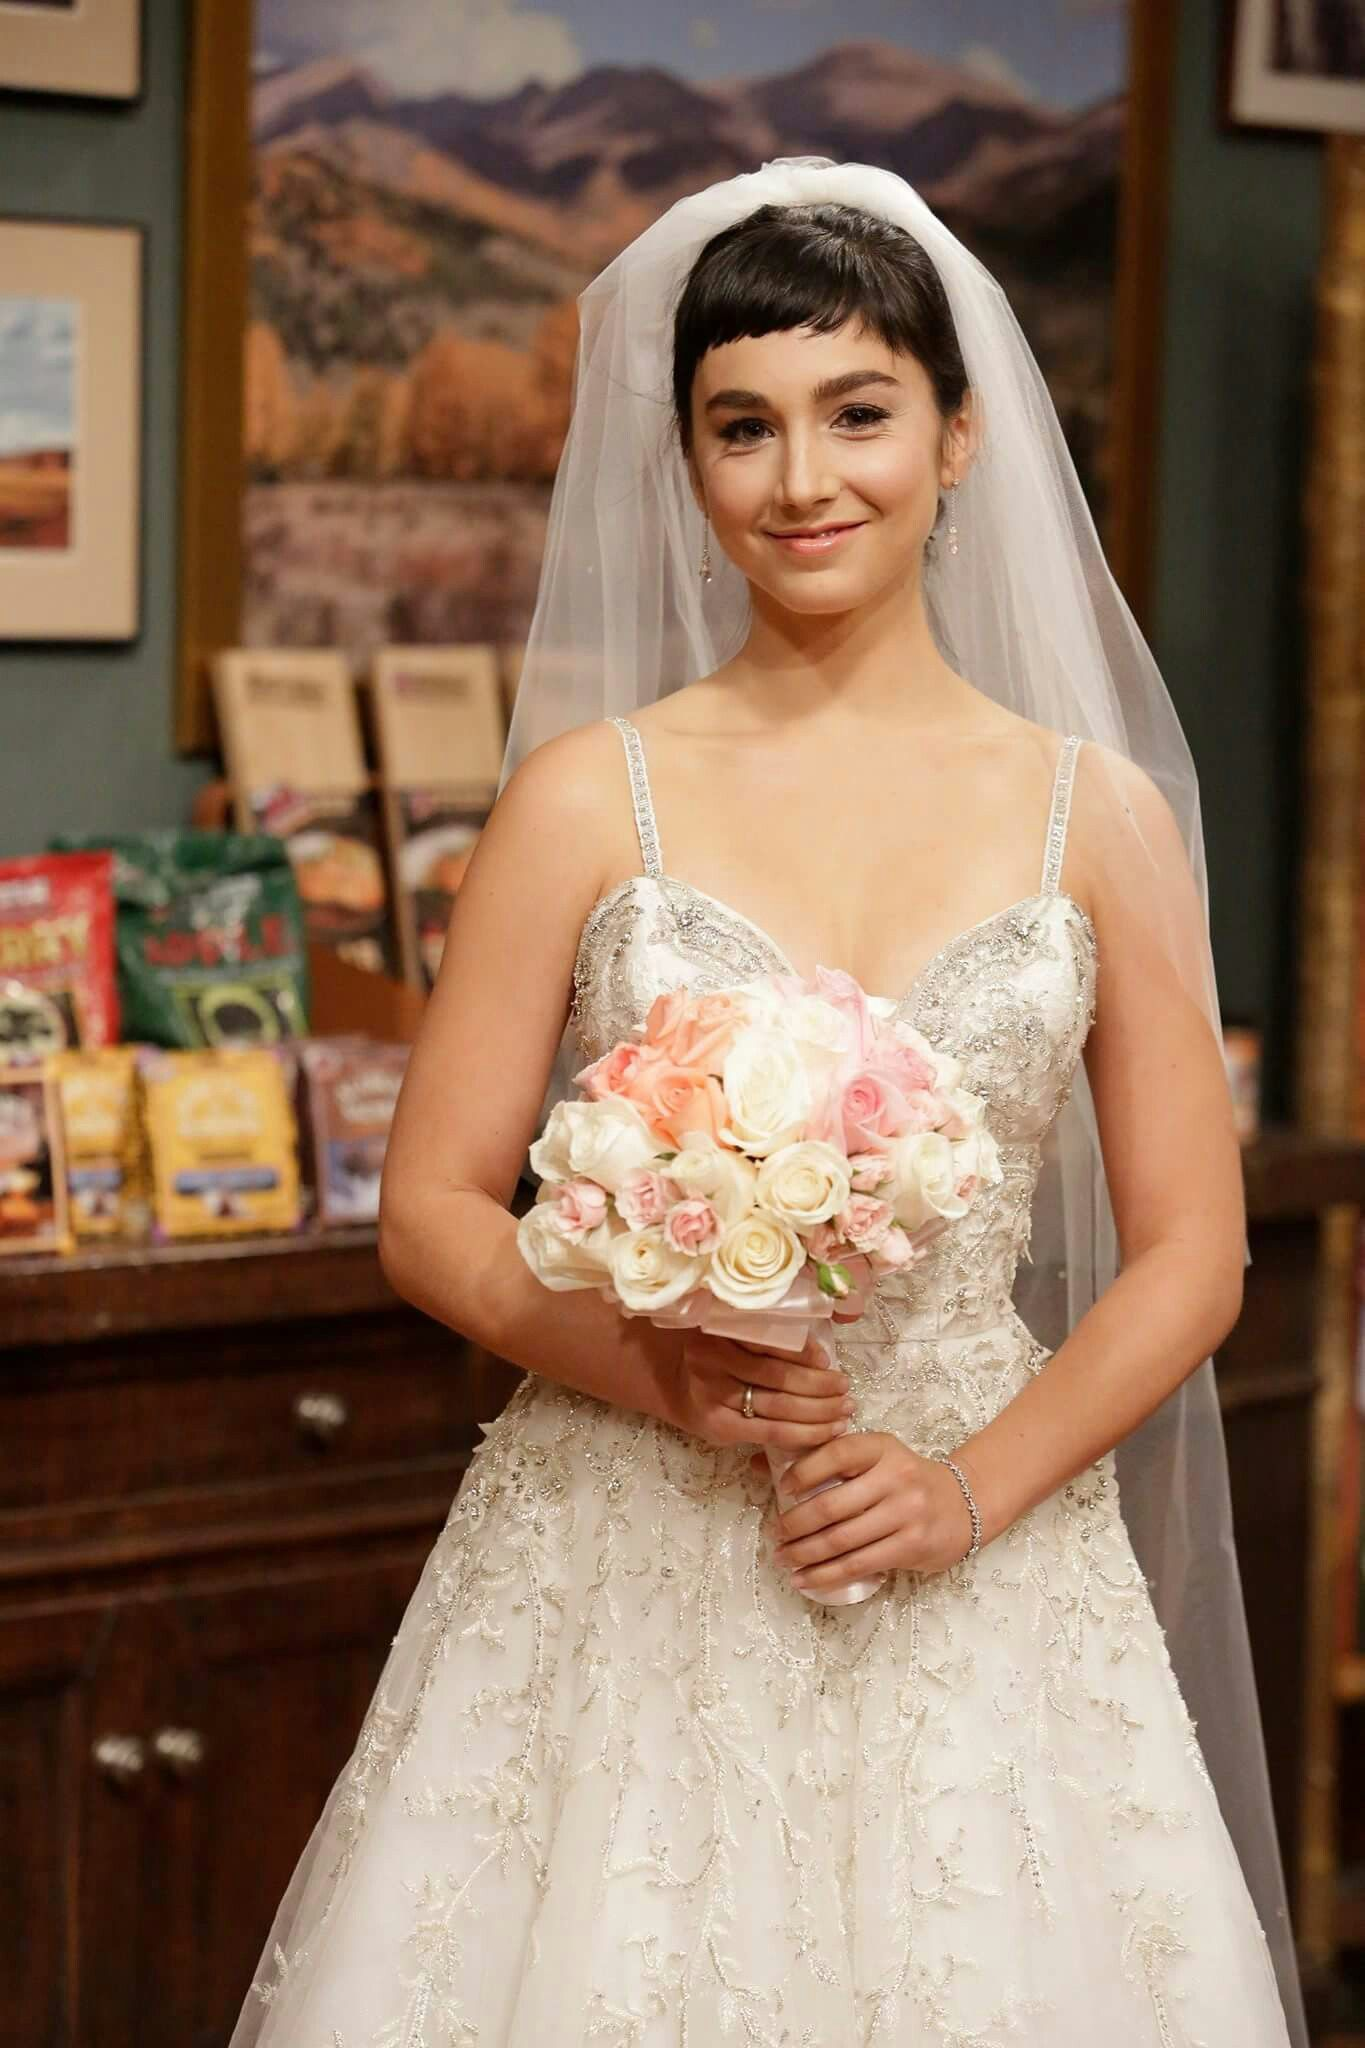 Last man standing mandy in her wedding dress to wed kyle for Last season wedding dresses